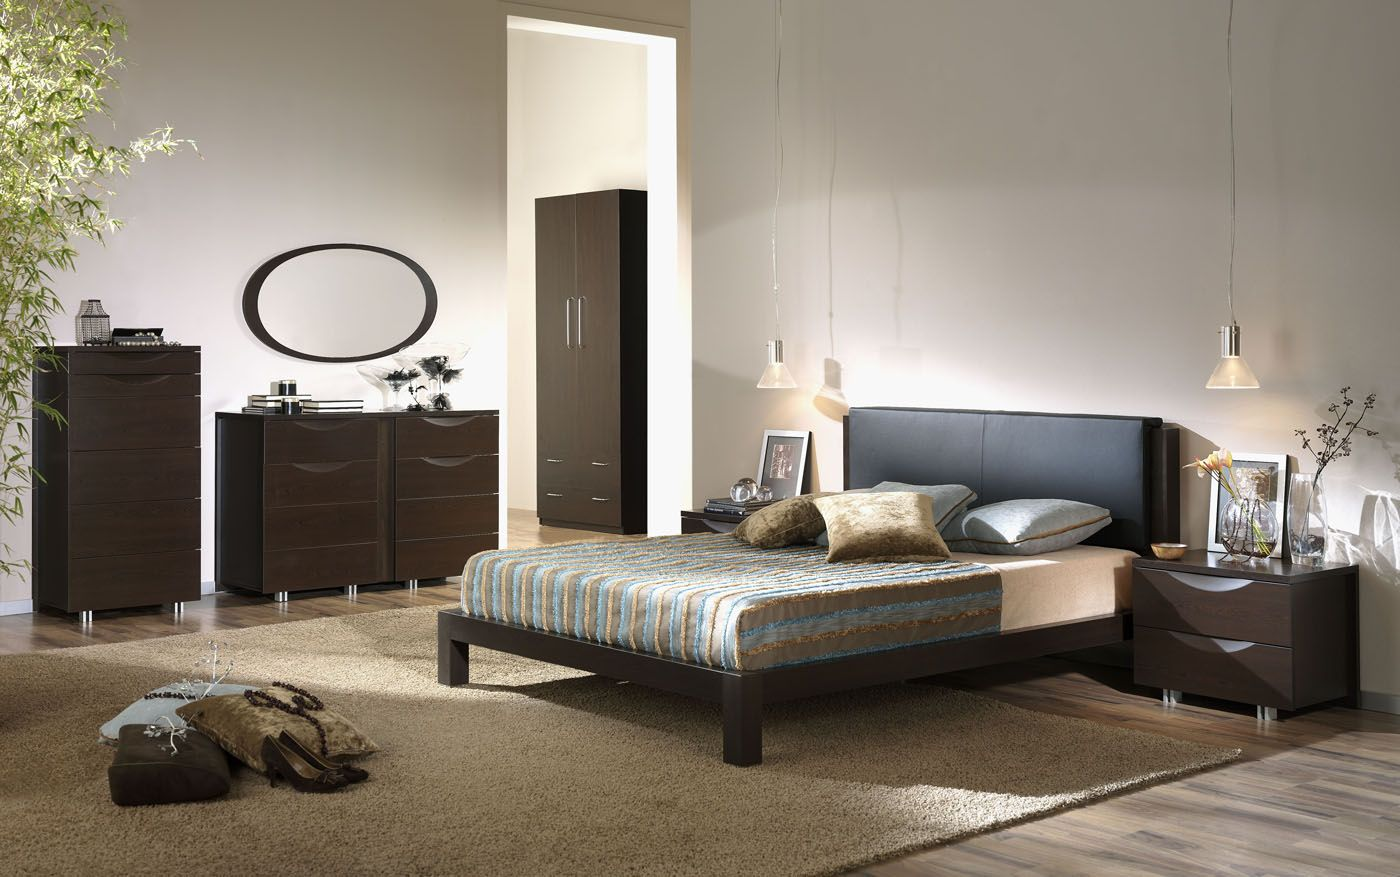 Interior decorating bedroom colors - Find This Pin And More On Interior Designs Elegant Bedroom Color